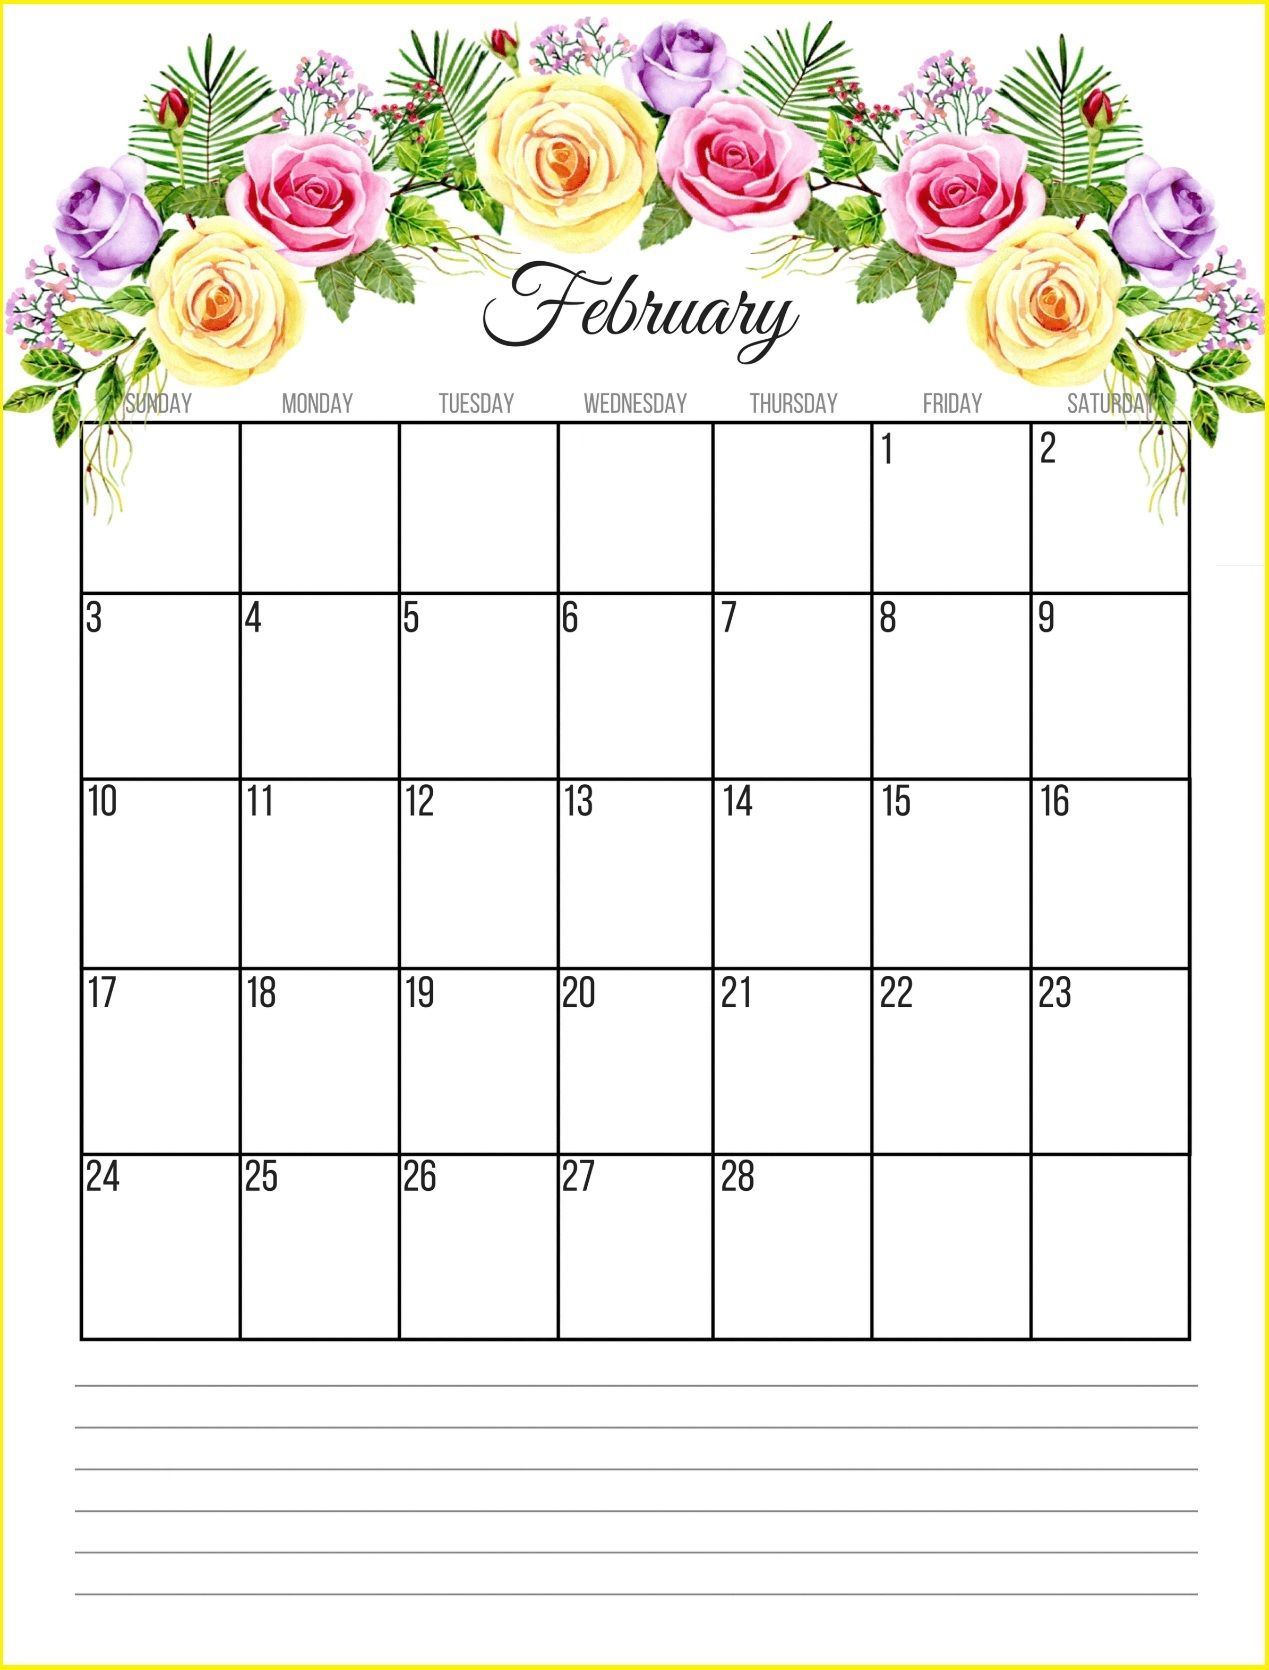 Free Download Calendar 2019 Floral February 2019 Calendar Monthly Templates Free Download HD